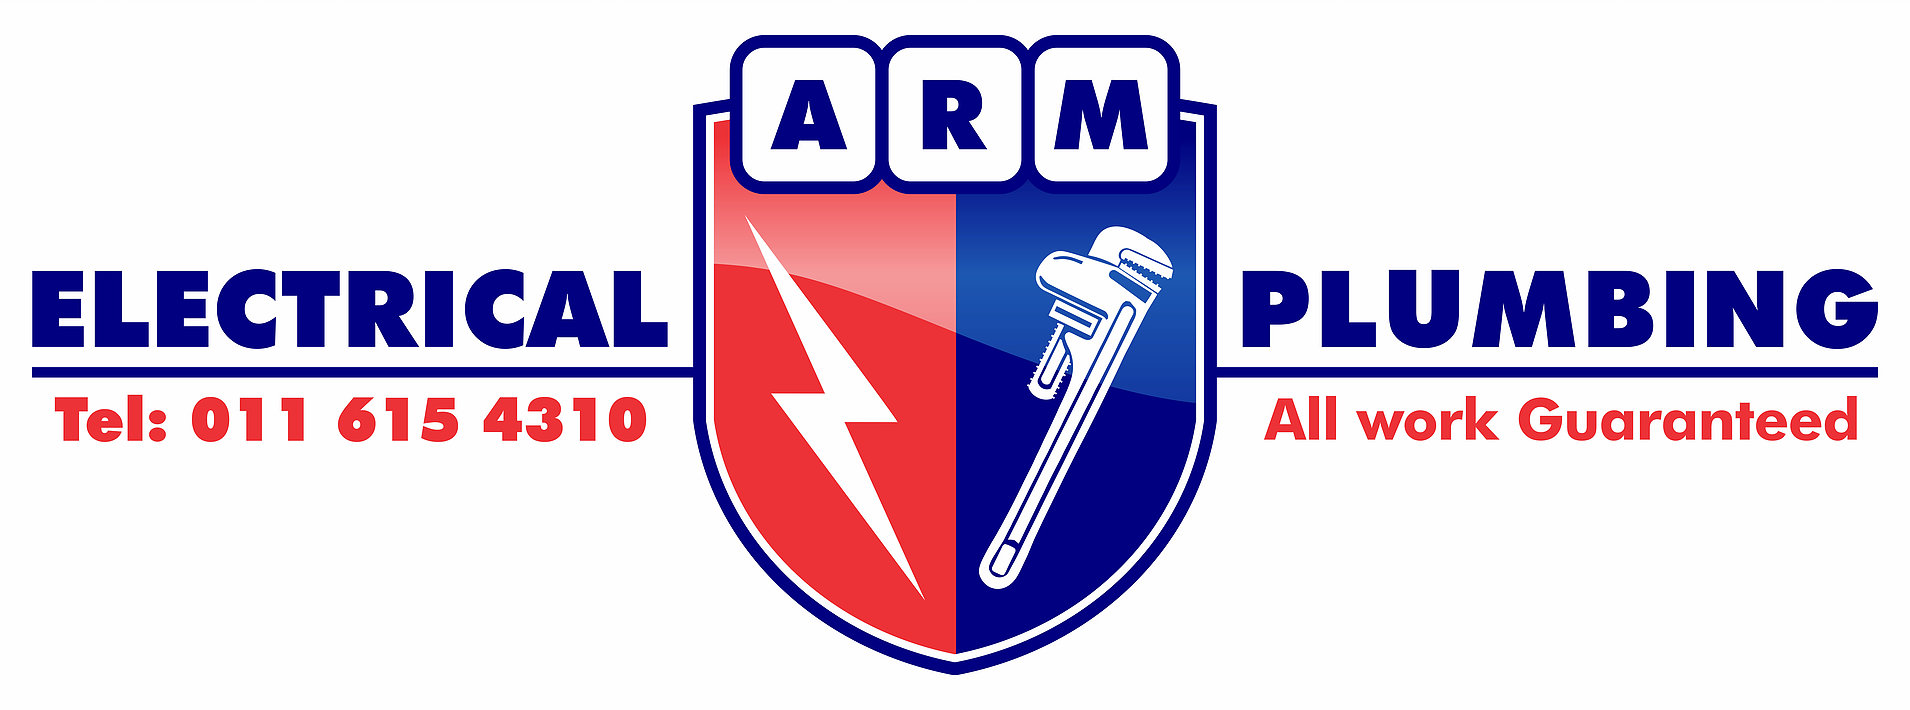 Pre-paid Meters - ARM Electrical & Plumbing